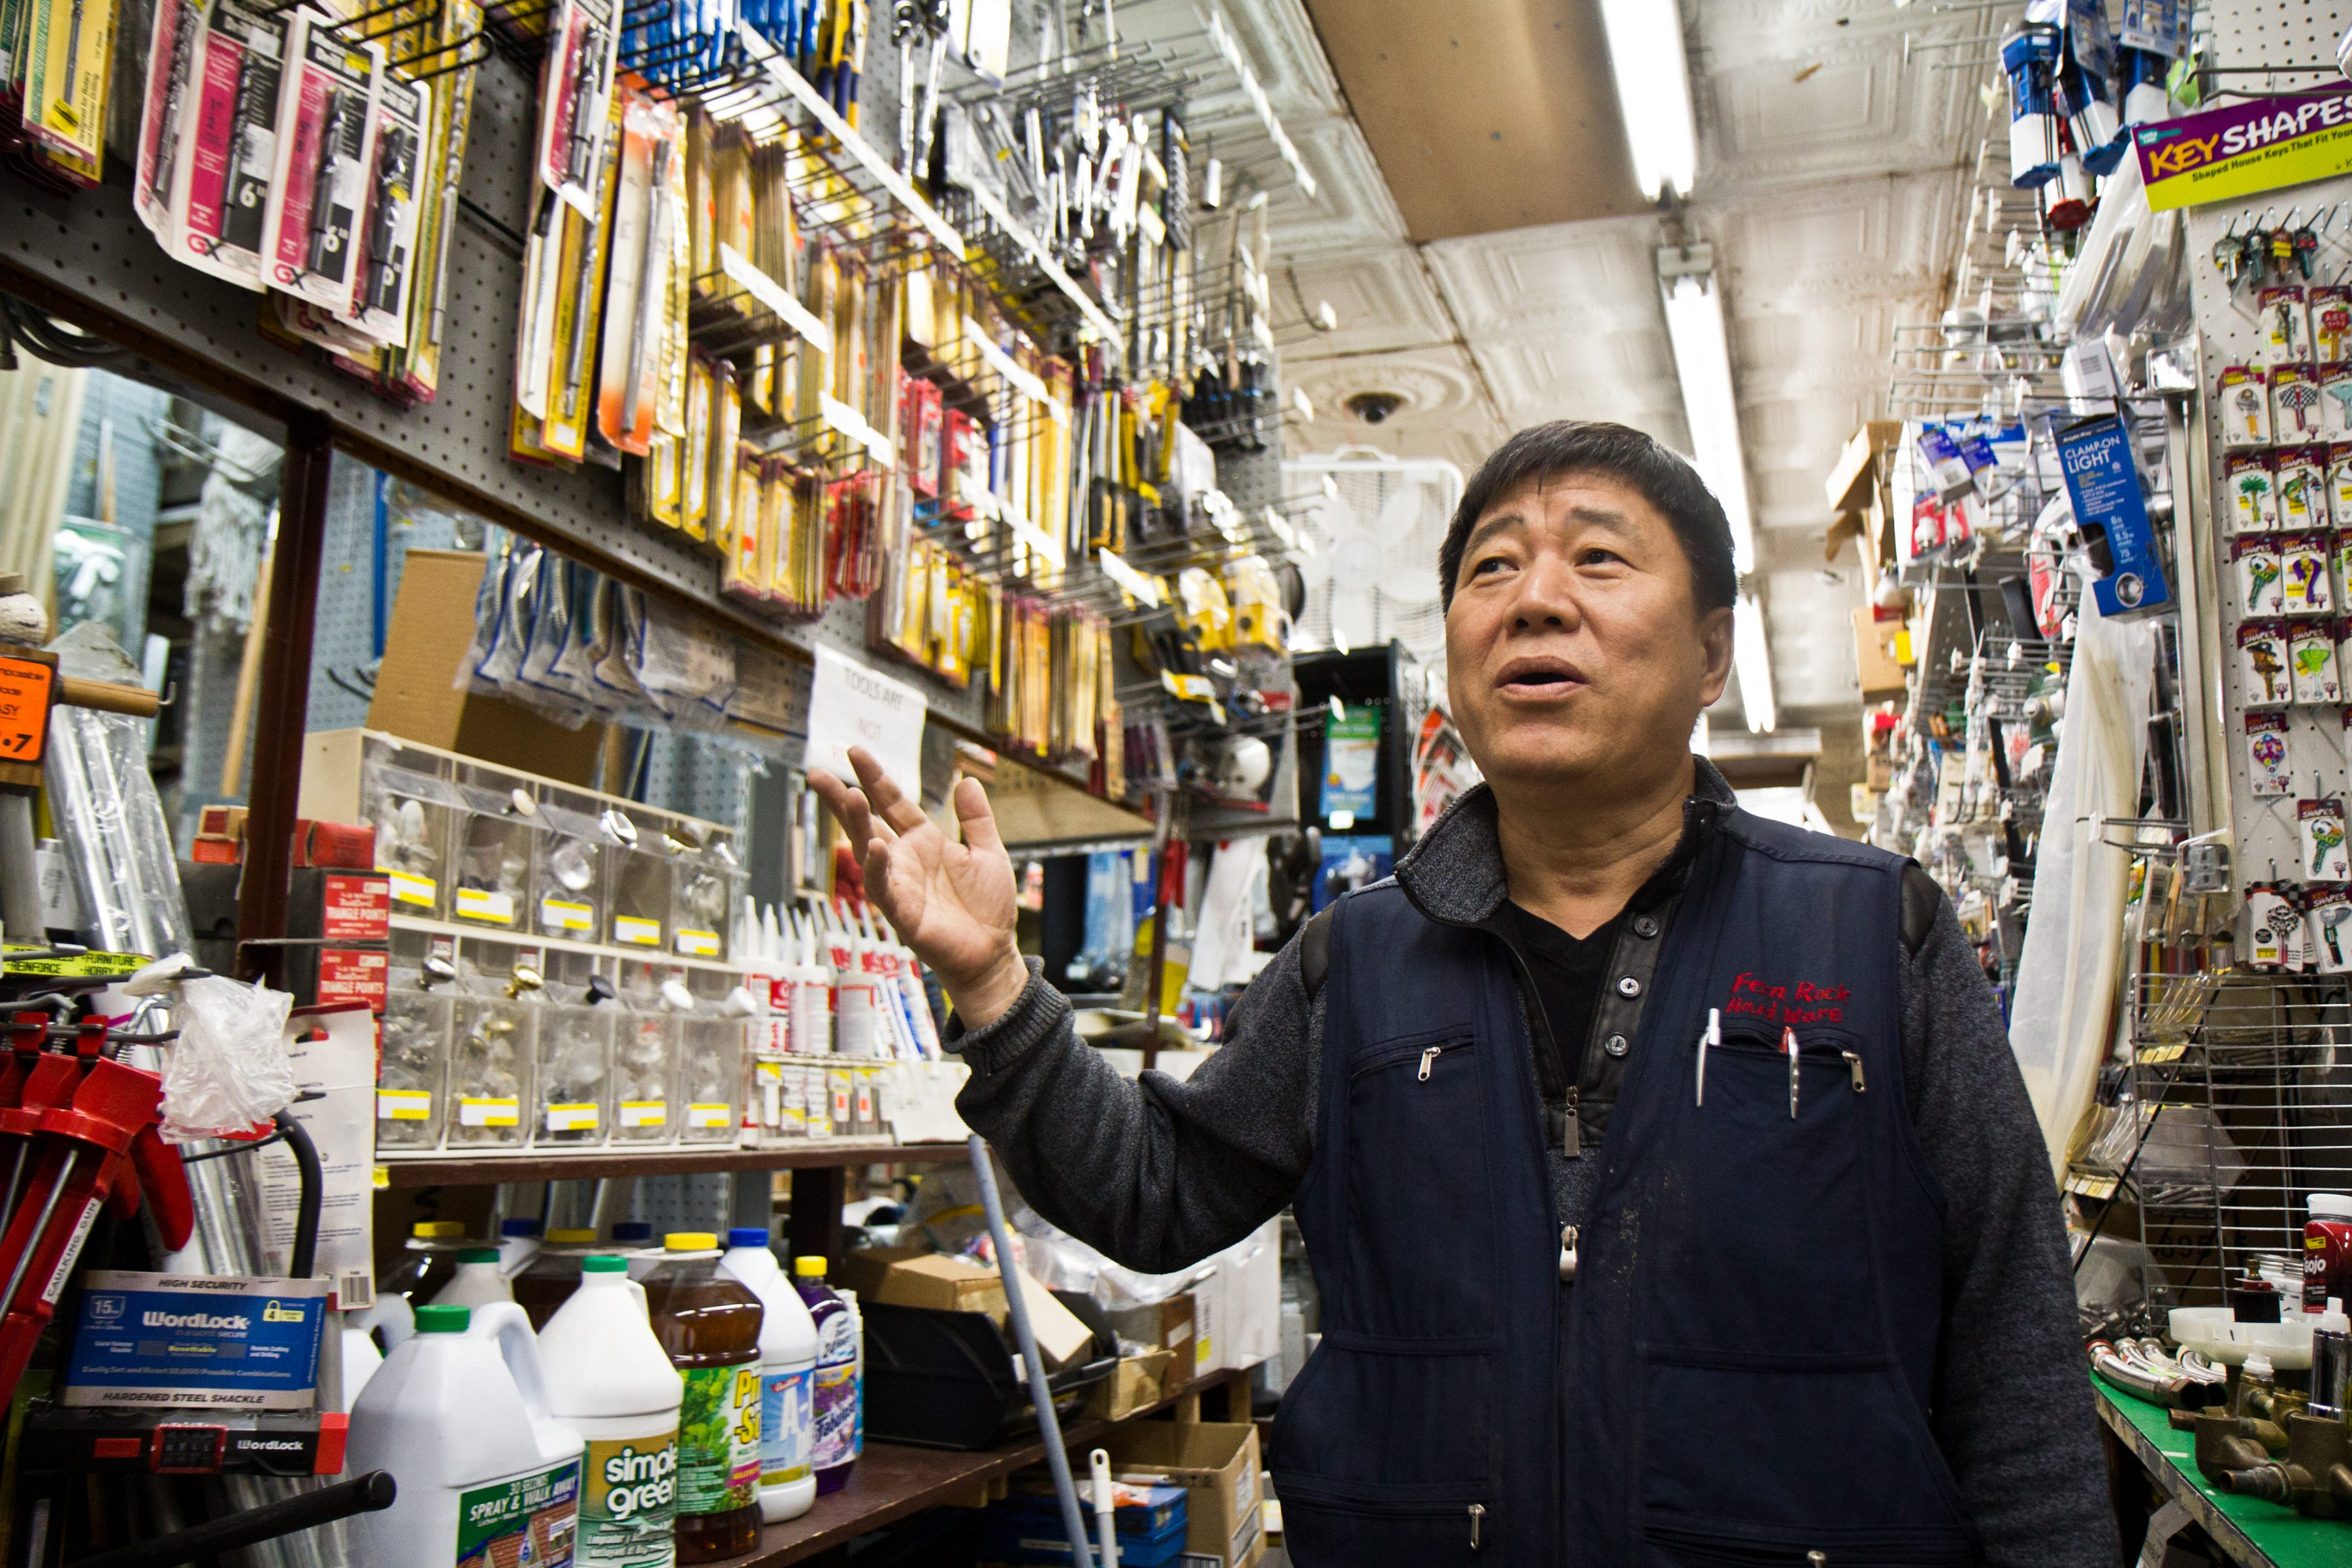 Justin Lee is the owner of Fern Rock Hardware in Olney.